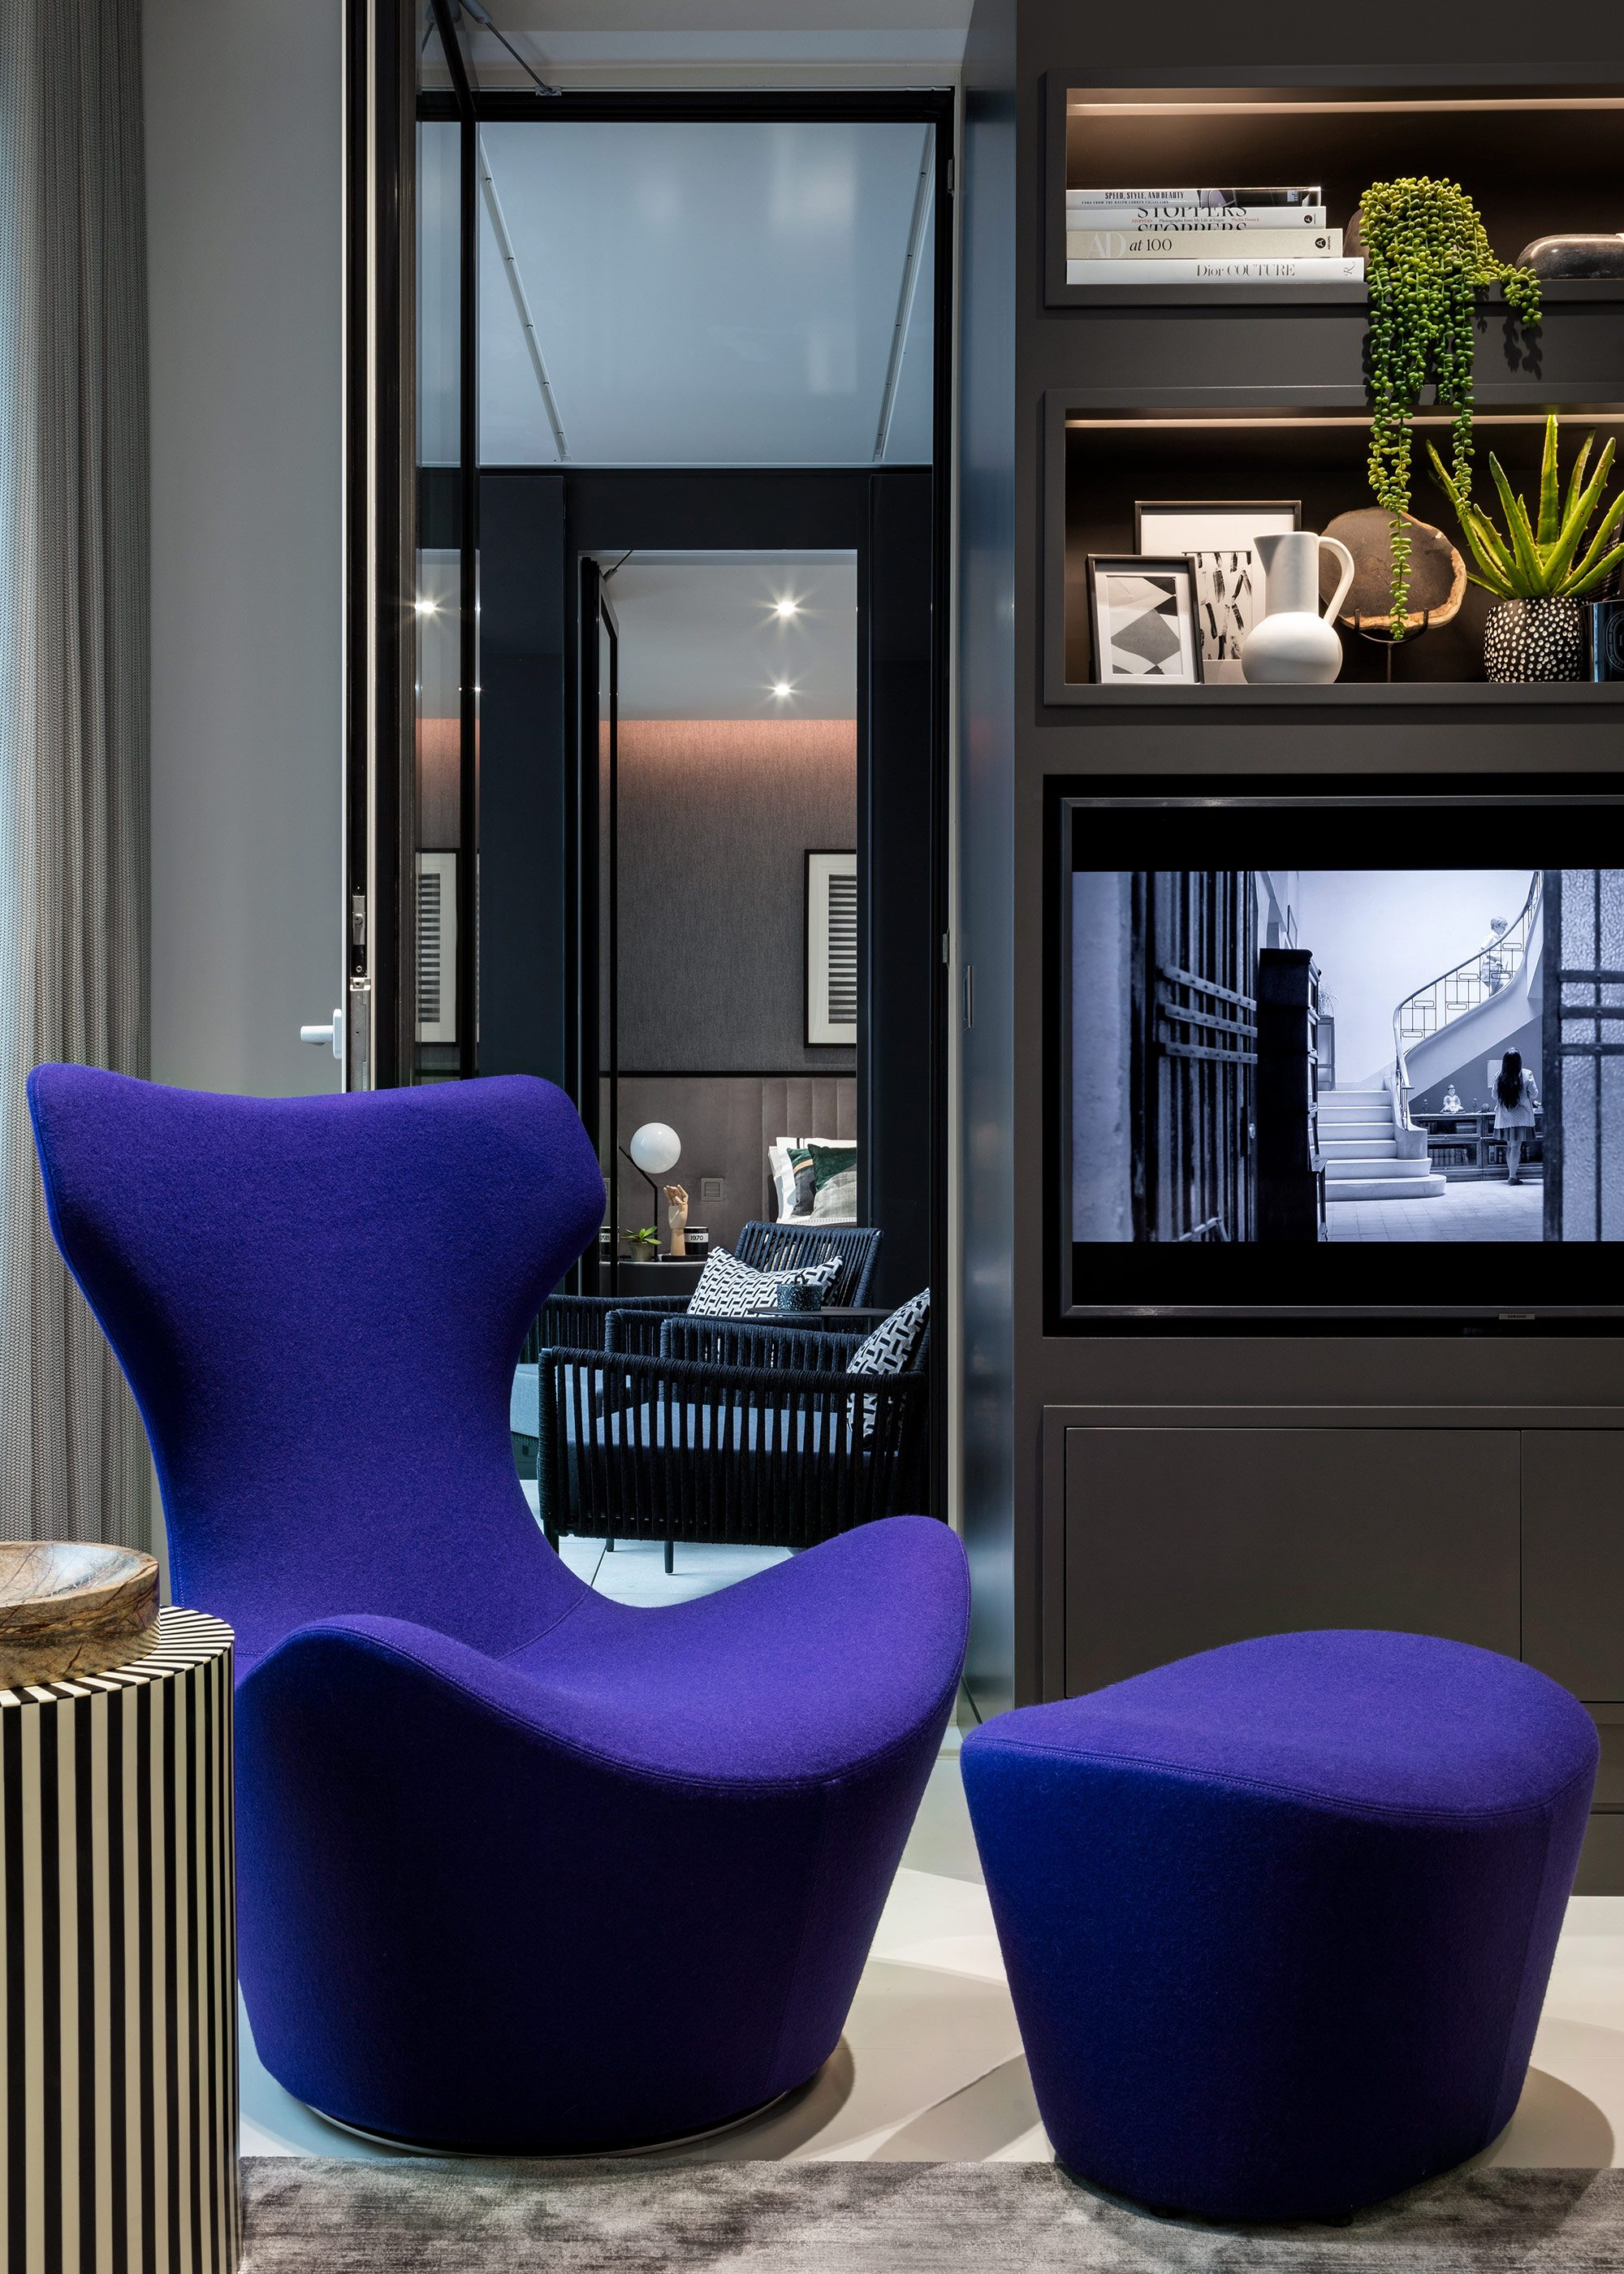 Honky Interior Design Luxury Apartment Hackney Road Living Room Detail 1a